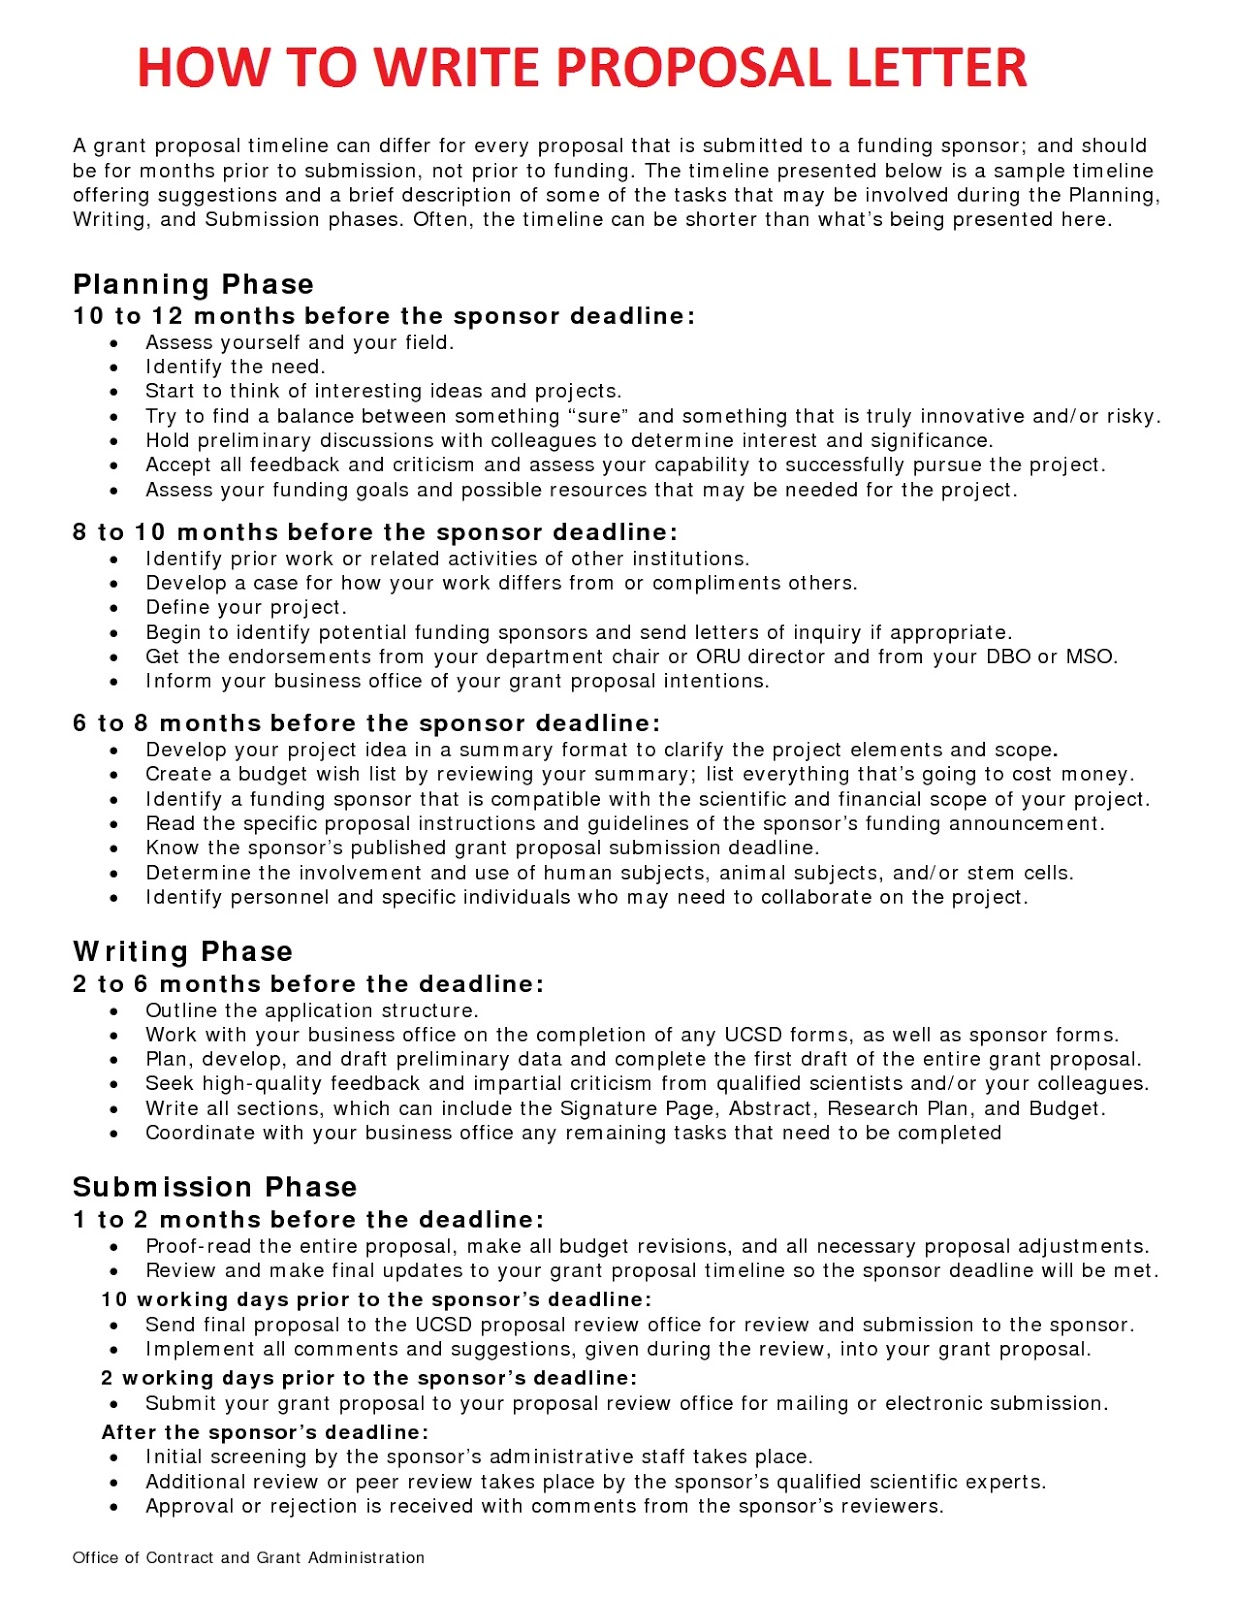 Business Proposal Document Examples – Free Examples of Business Proposals